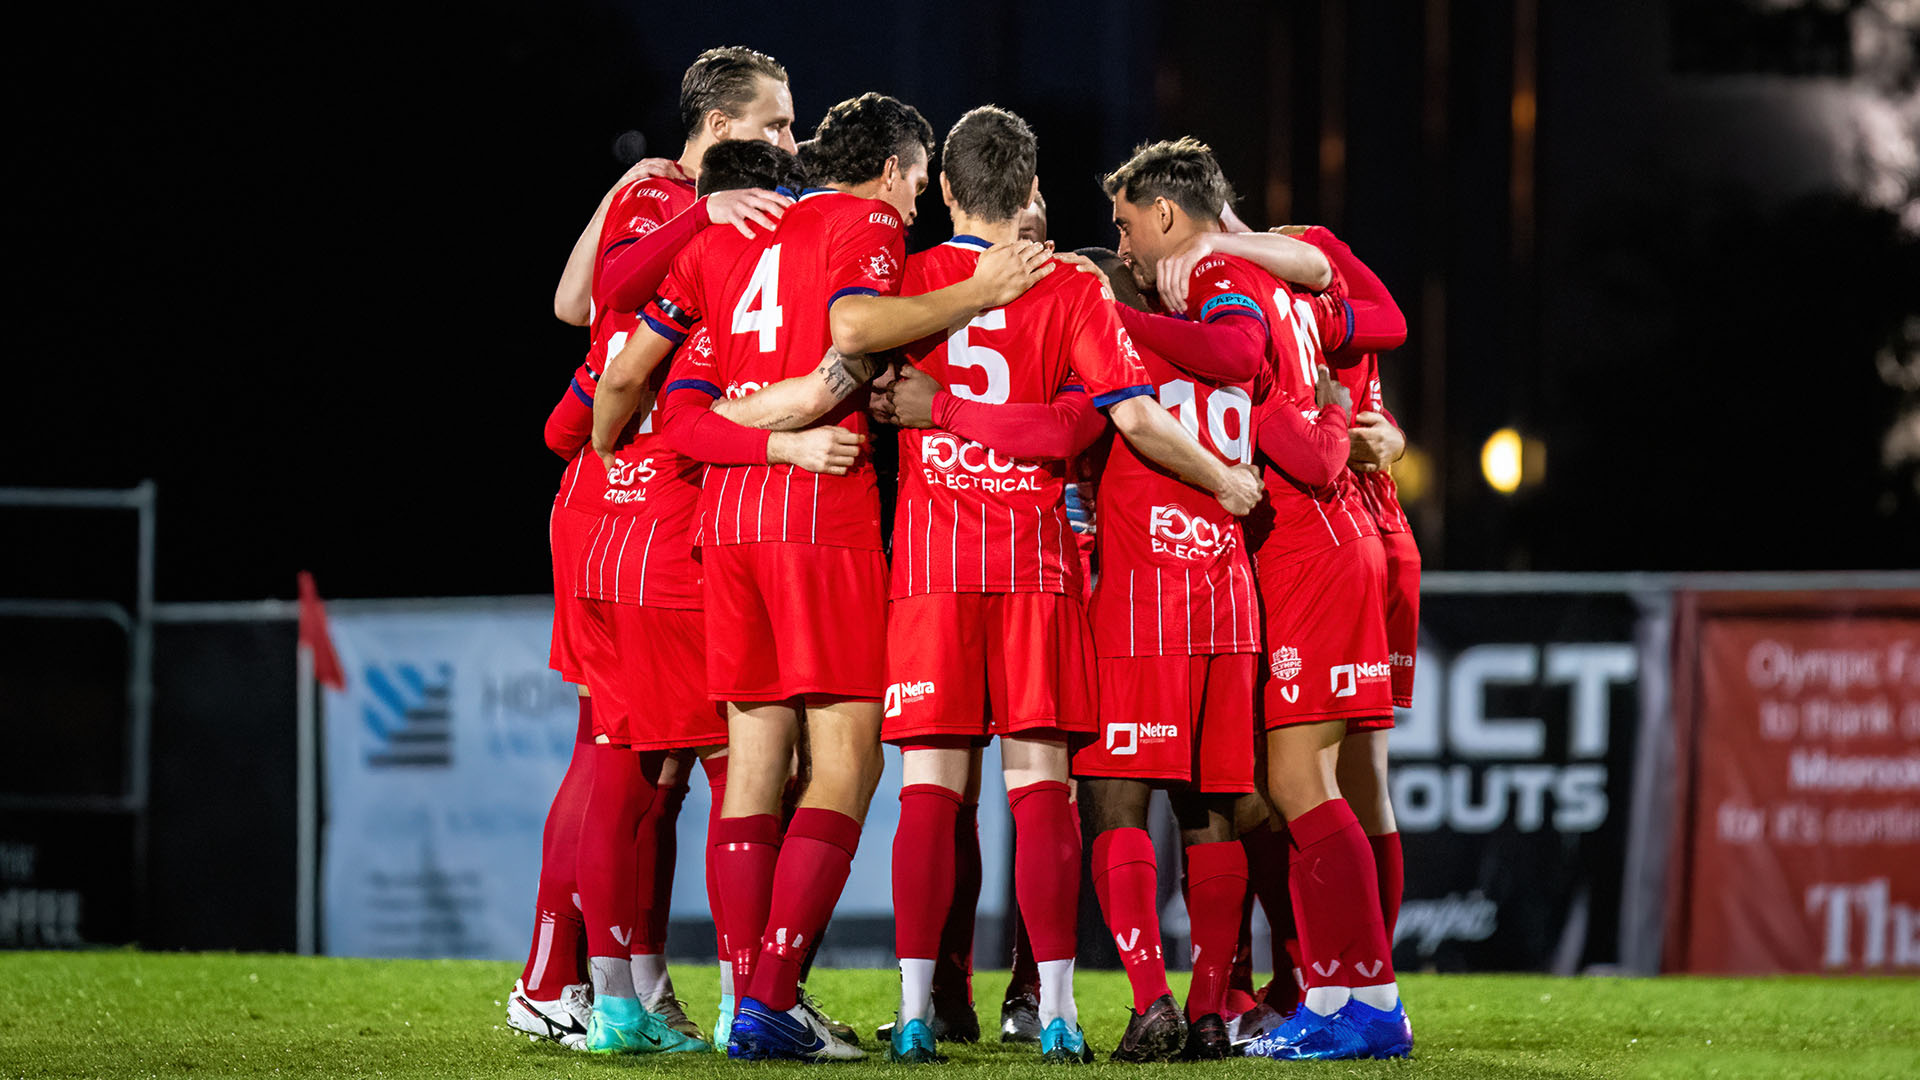 Match Preview: Olympic FC vs Lions FC